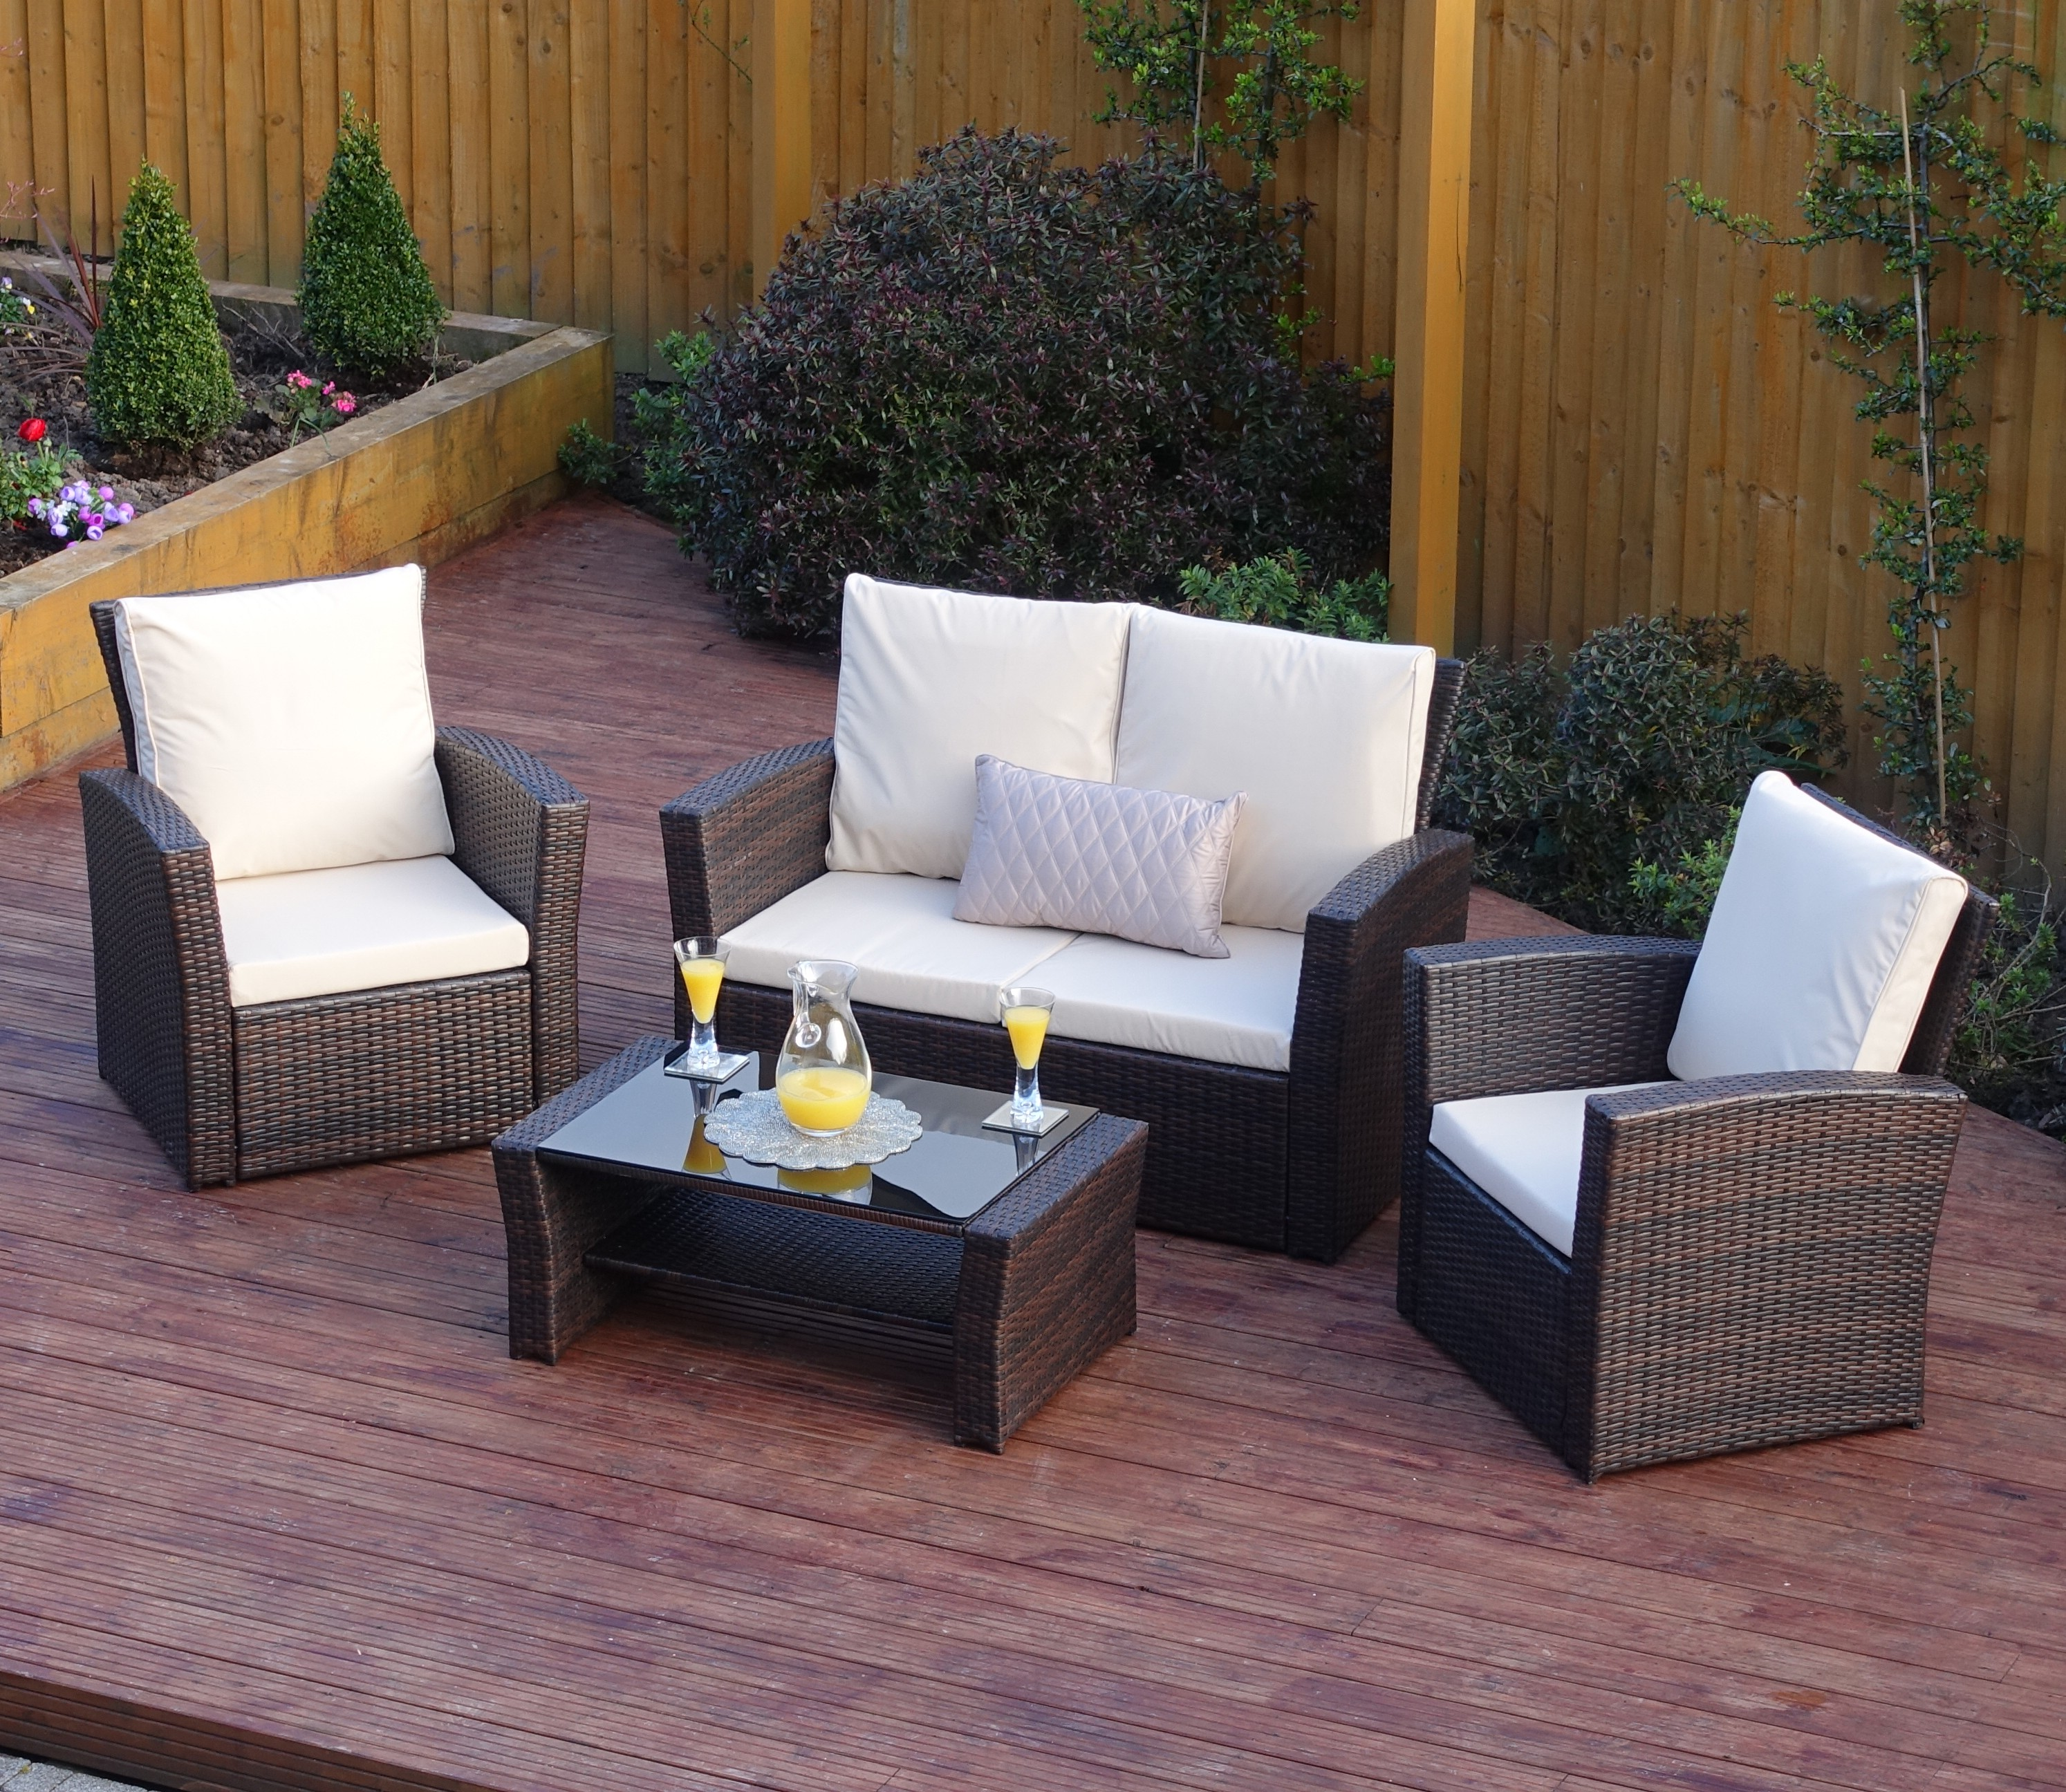 4 piece algarve rattan sofa set for patios conservatories. Black Bedroom Furniture Sets. Home Design Ideas